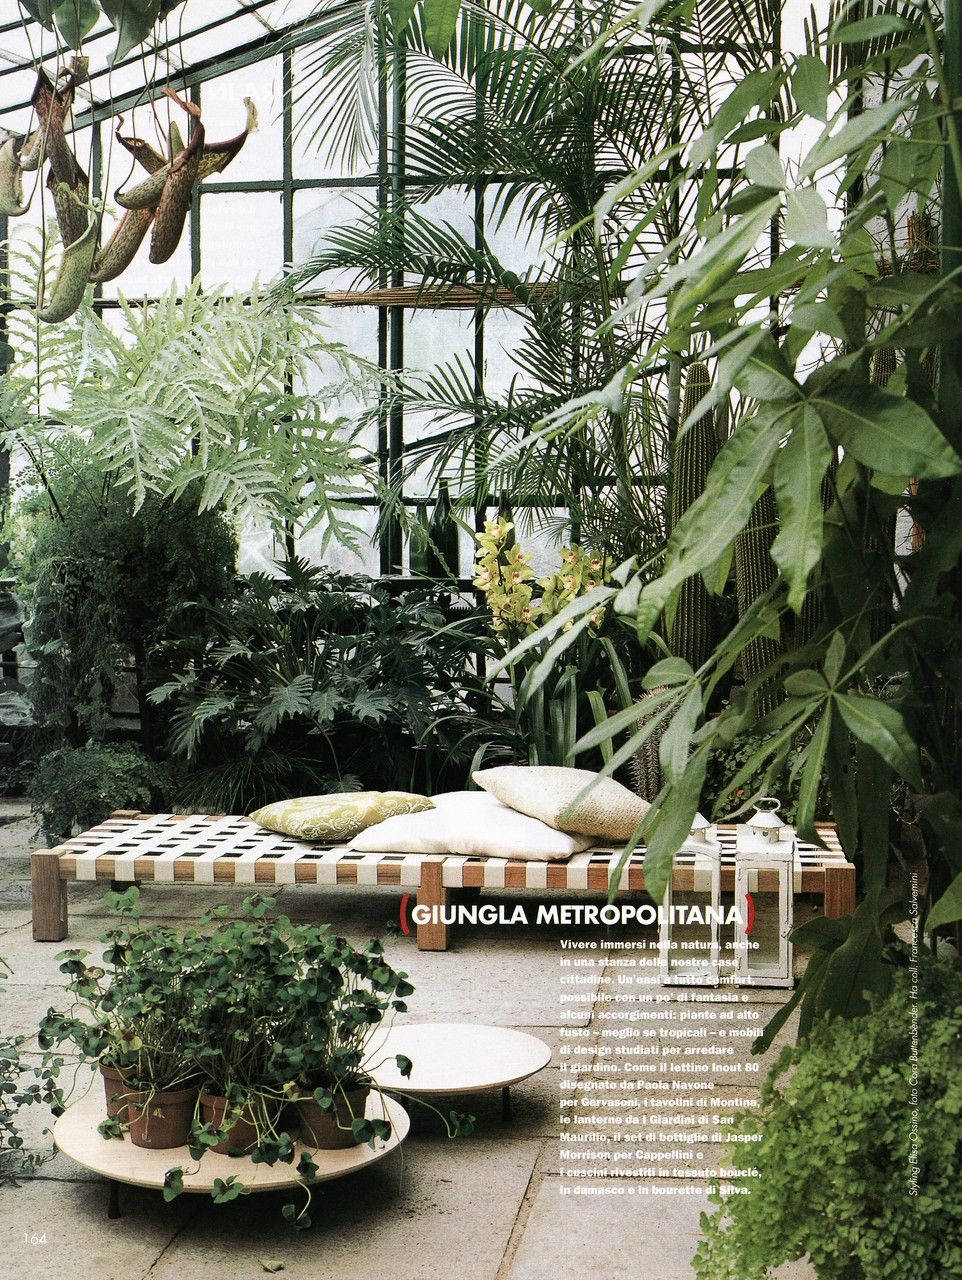 conservatory plants • Style School :: love those crazy-looking carnivorous pitcher plants hanging from the ceiling!